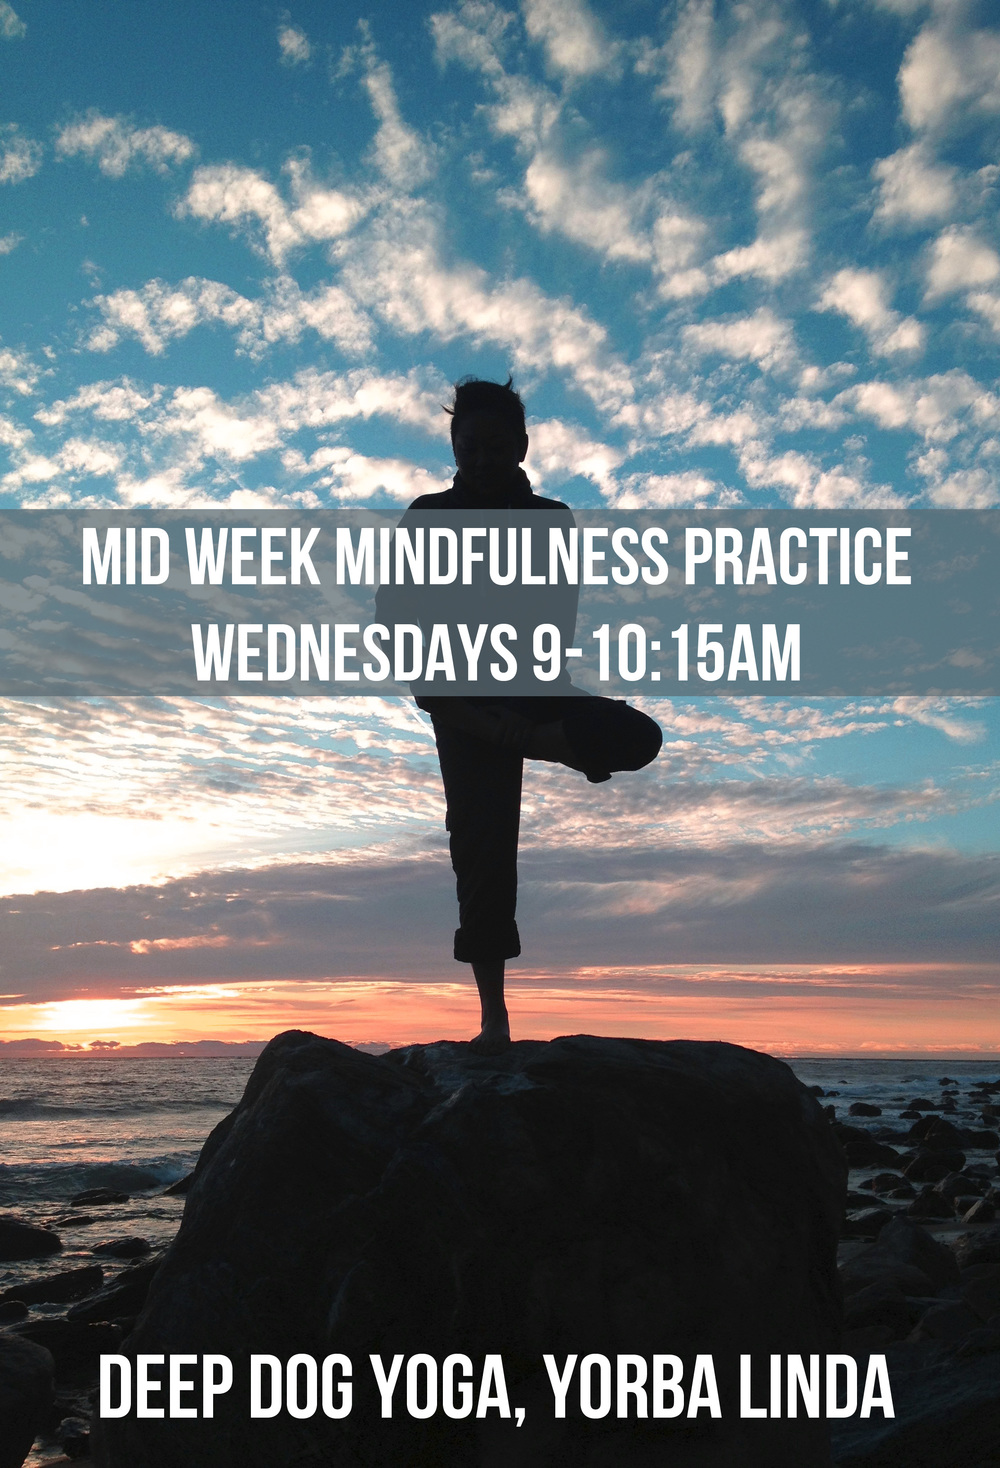 Take a breath to make it through the week. Join us for a midweek mindfulness practice Wednesdays from 9:00am-10:15am at Deep Dog Yoga.